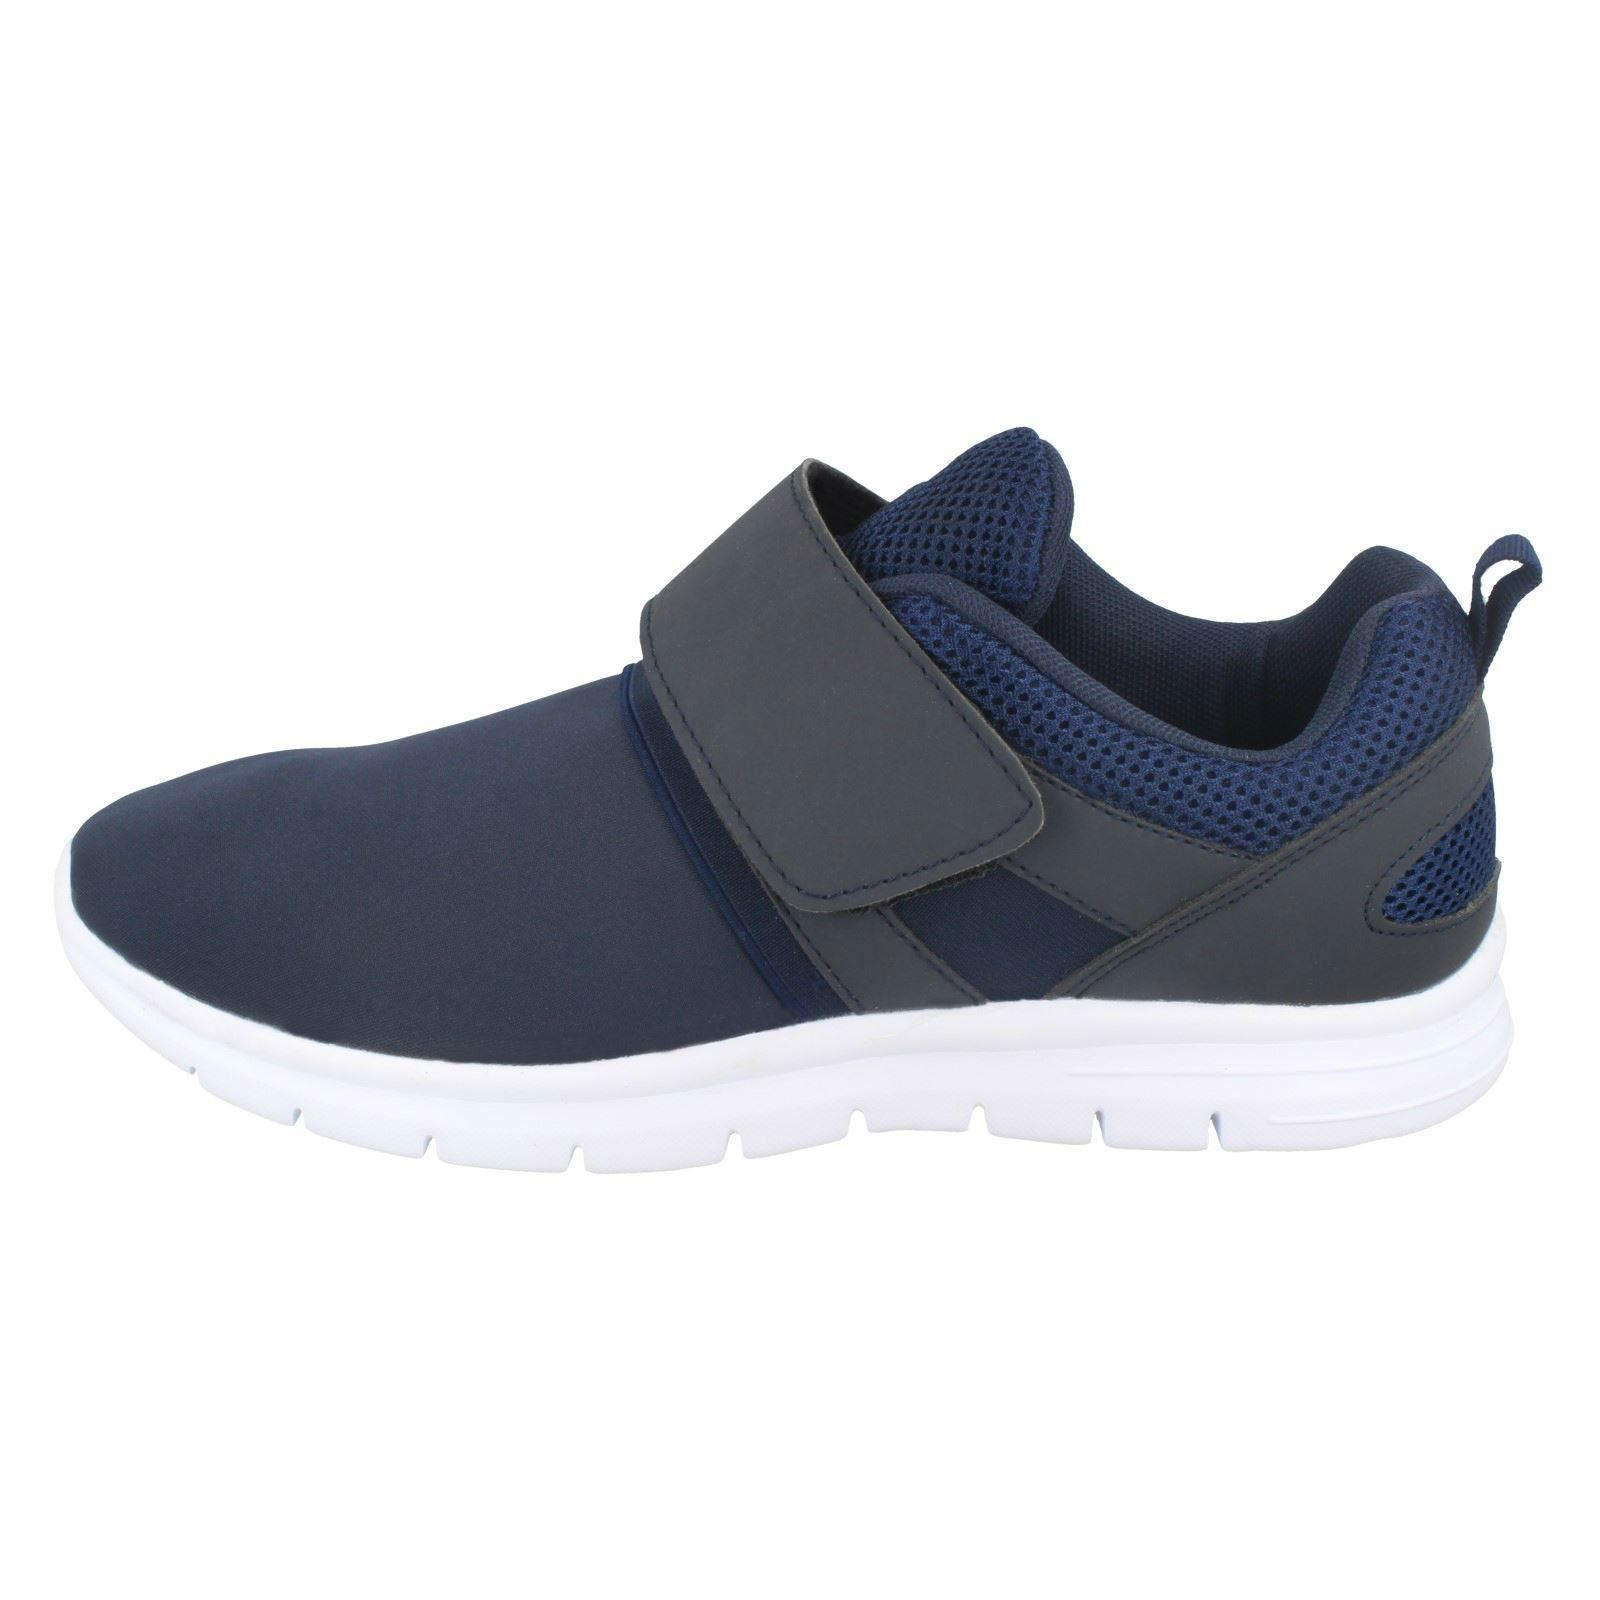 Airtech Florida Mens Ultralite Classic Casual Fitness Gym Workout Trainers Navy